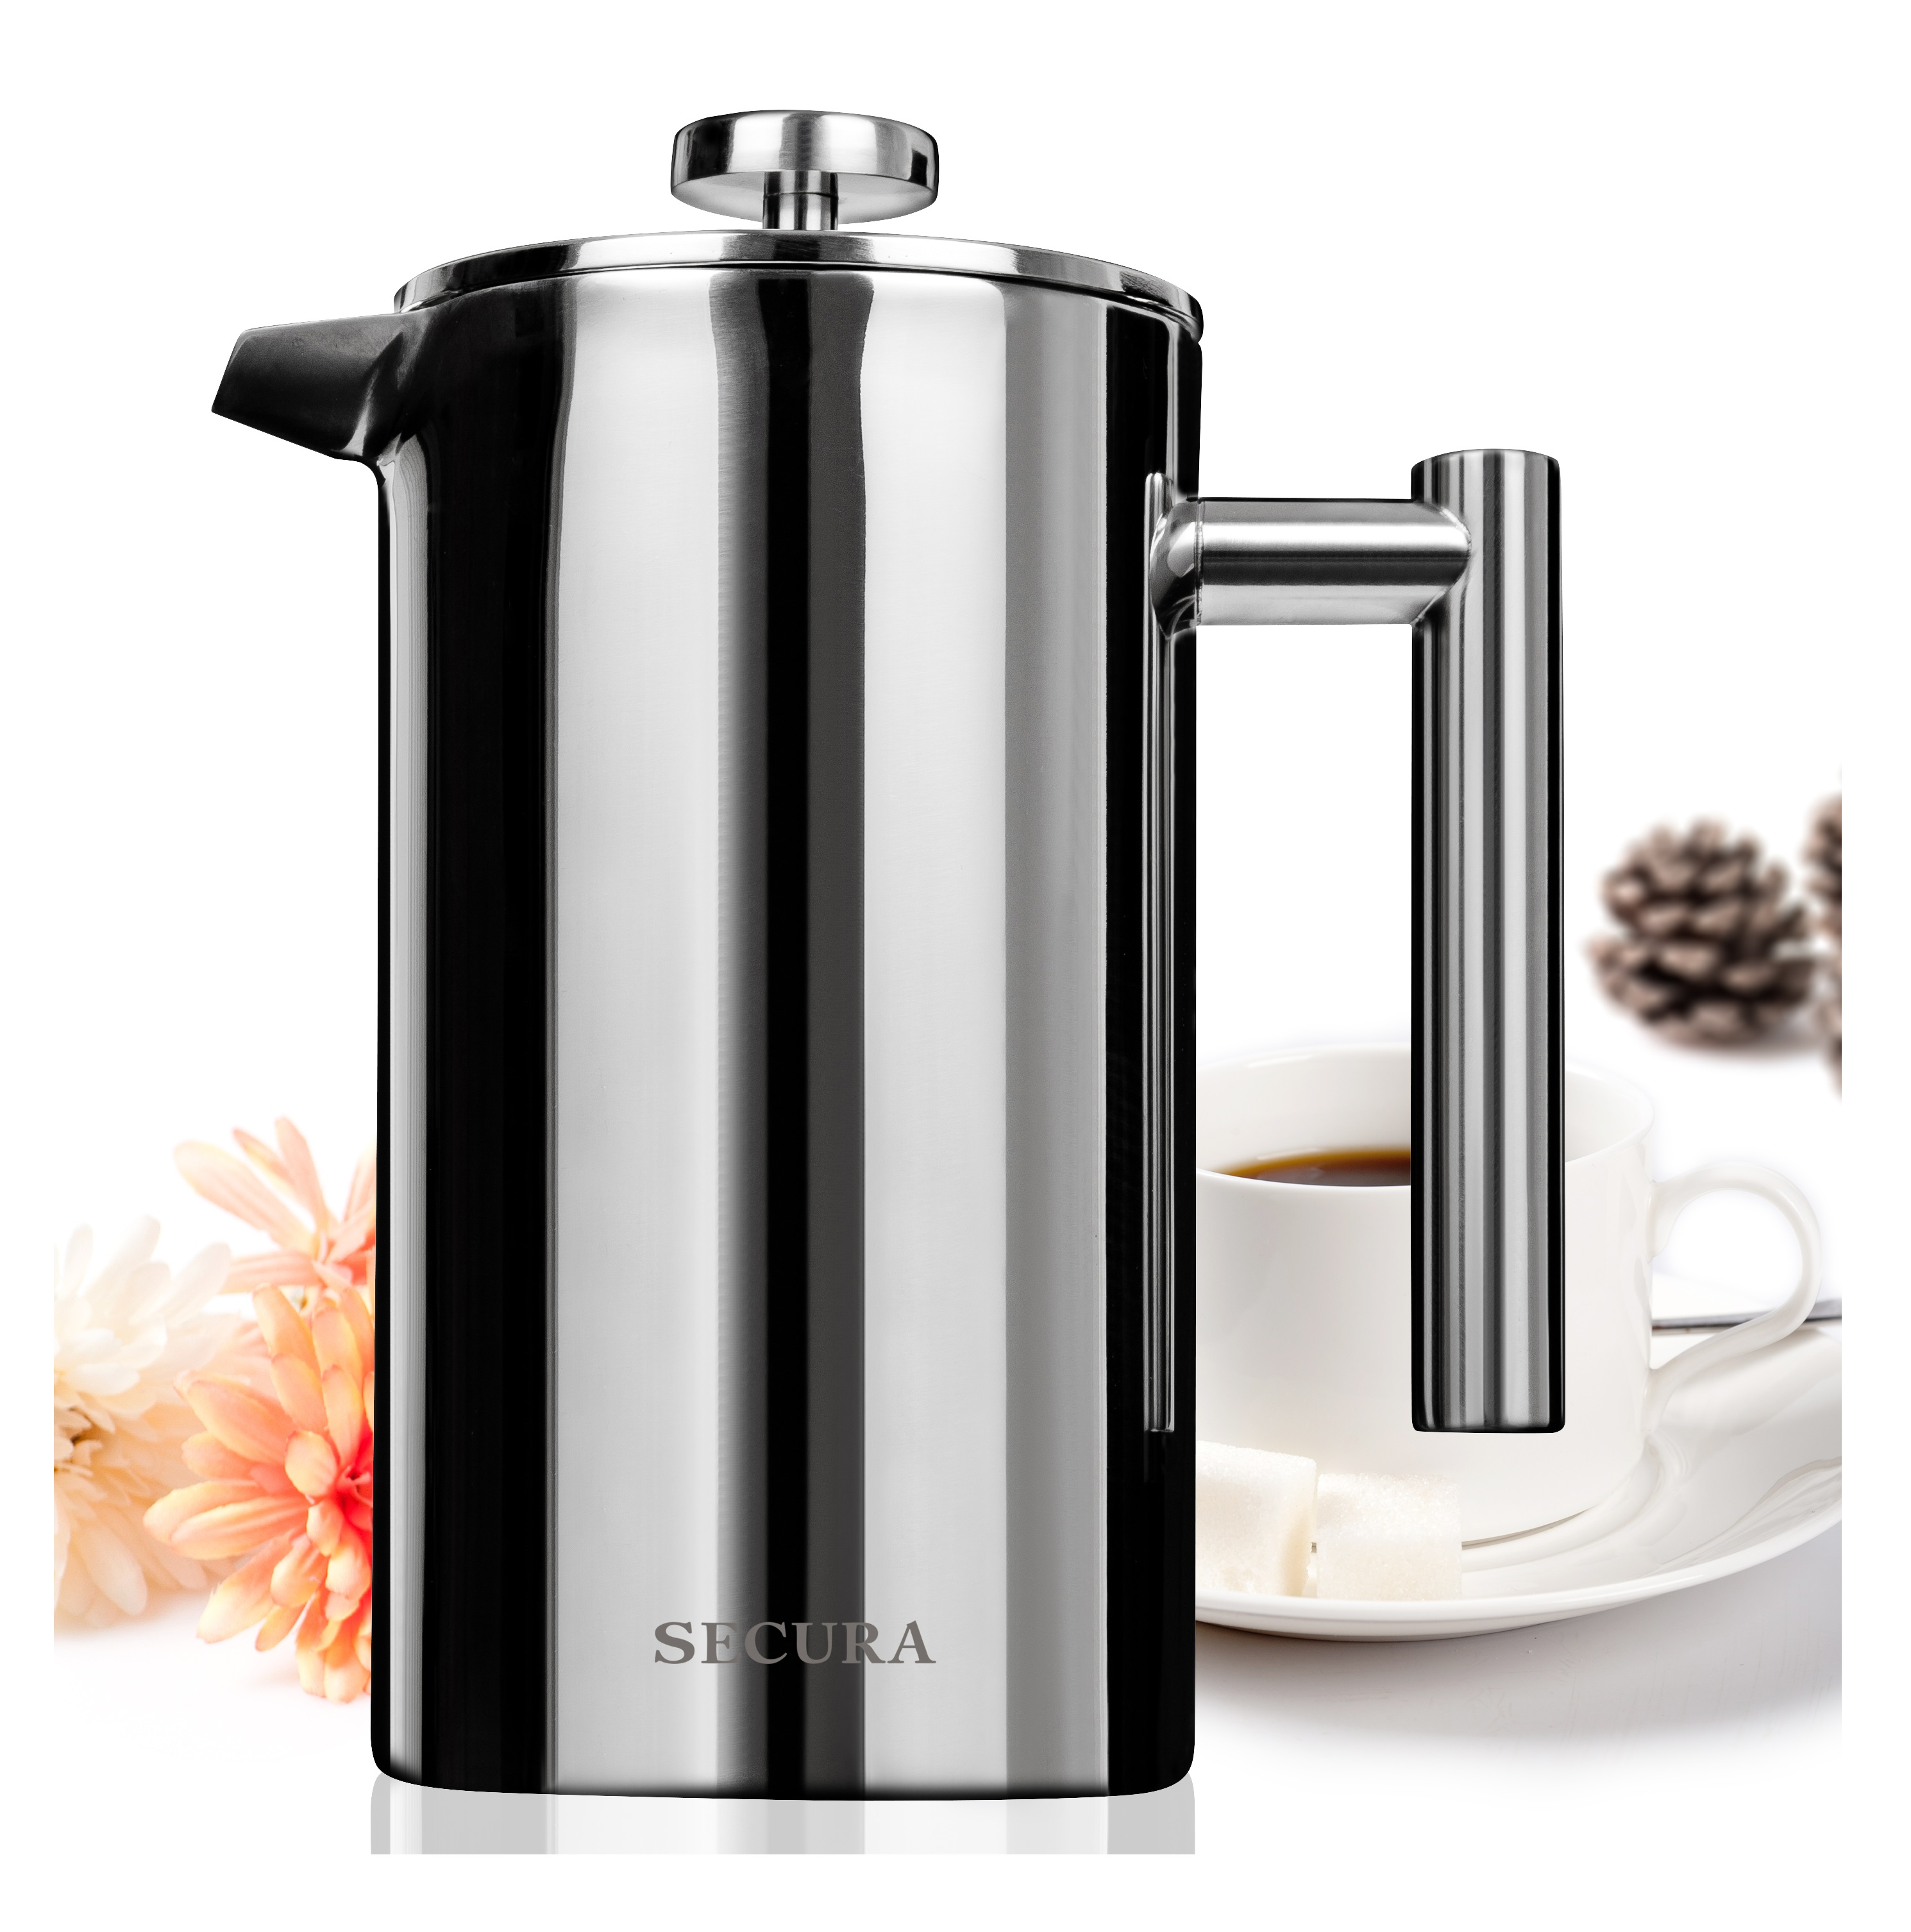 Bed bath beyond french press - Secura 1 Liter Stainless Steel French Press Coffee Maker Sfp 34ds